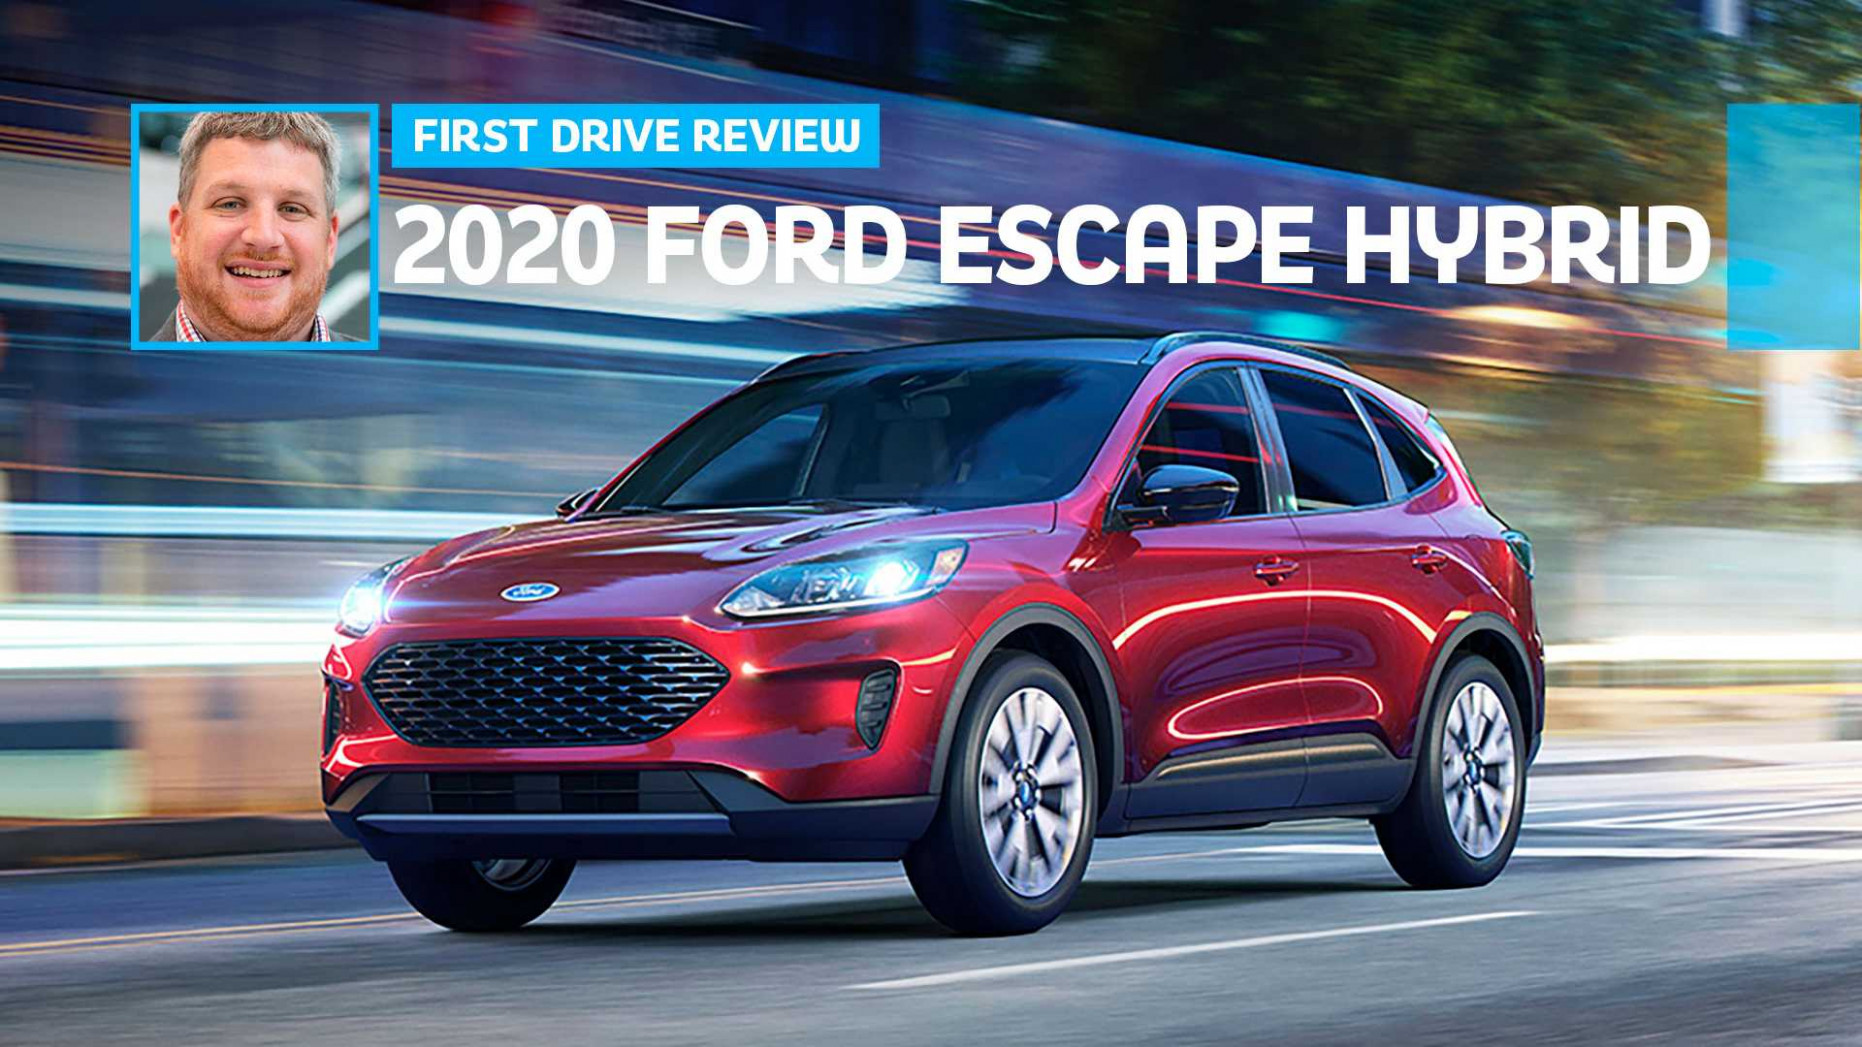 6 Ford Escape Hybrid First Drive: A Smart Buy, But For How Long? - 2020 ford hybrid